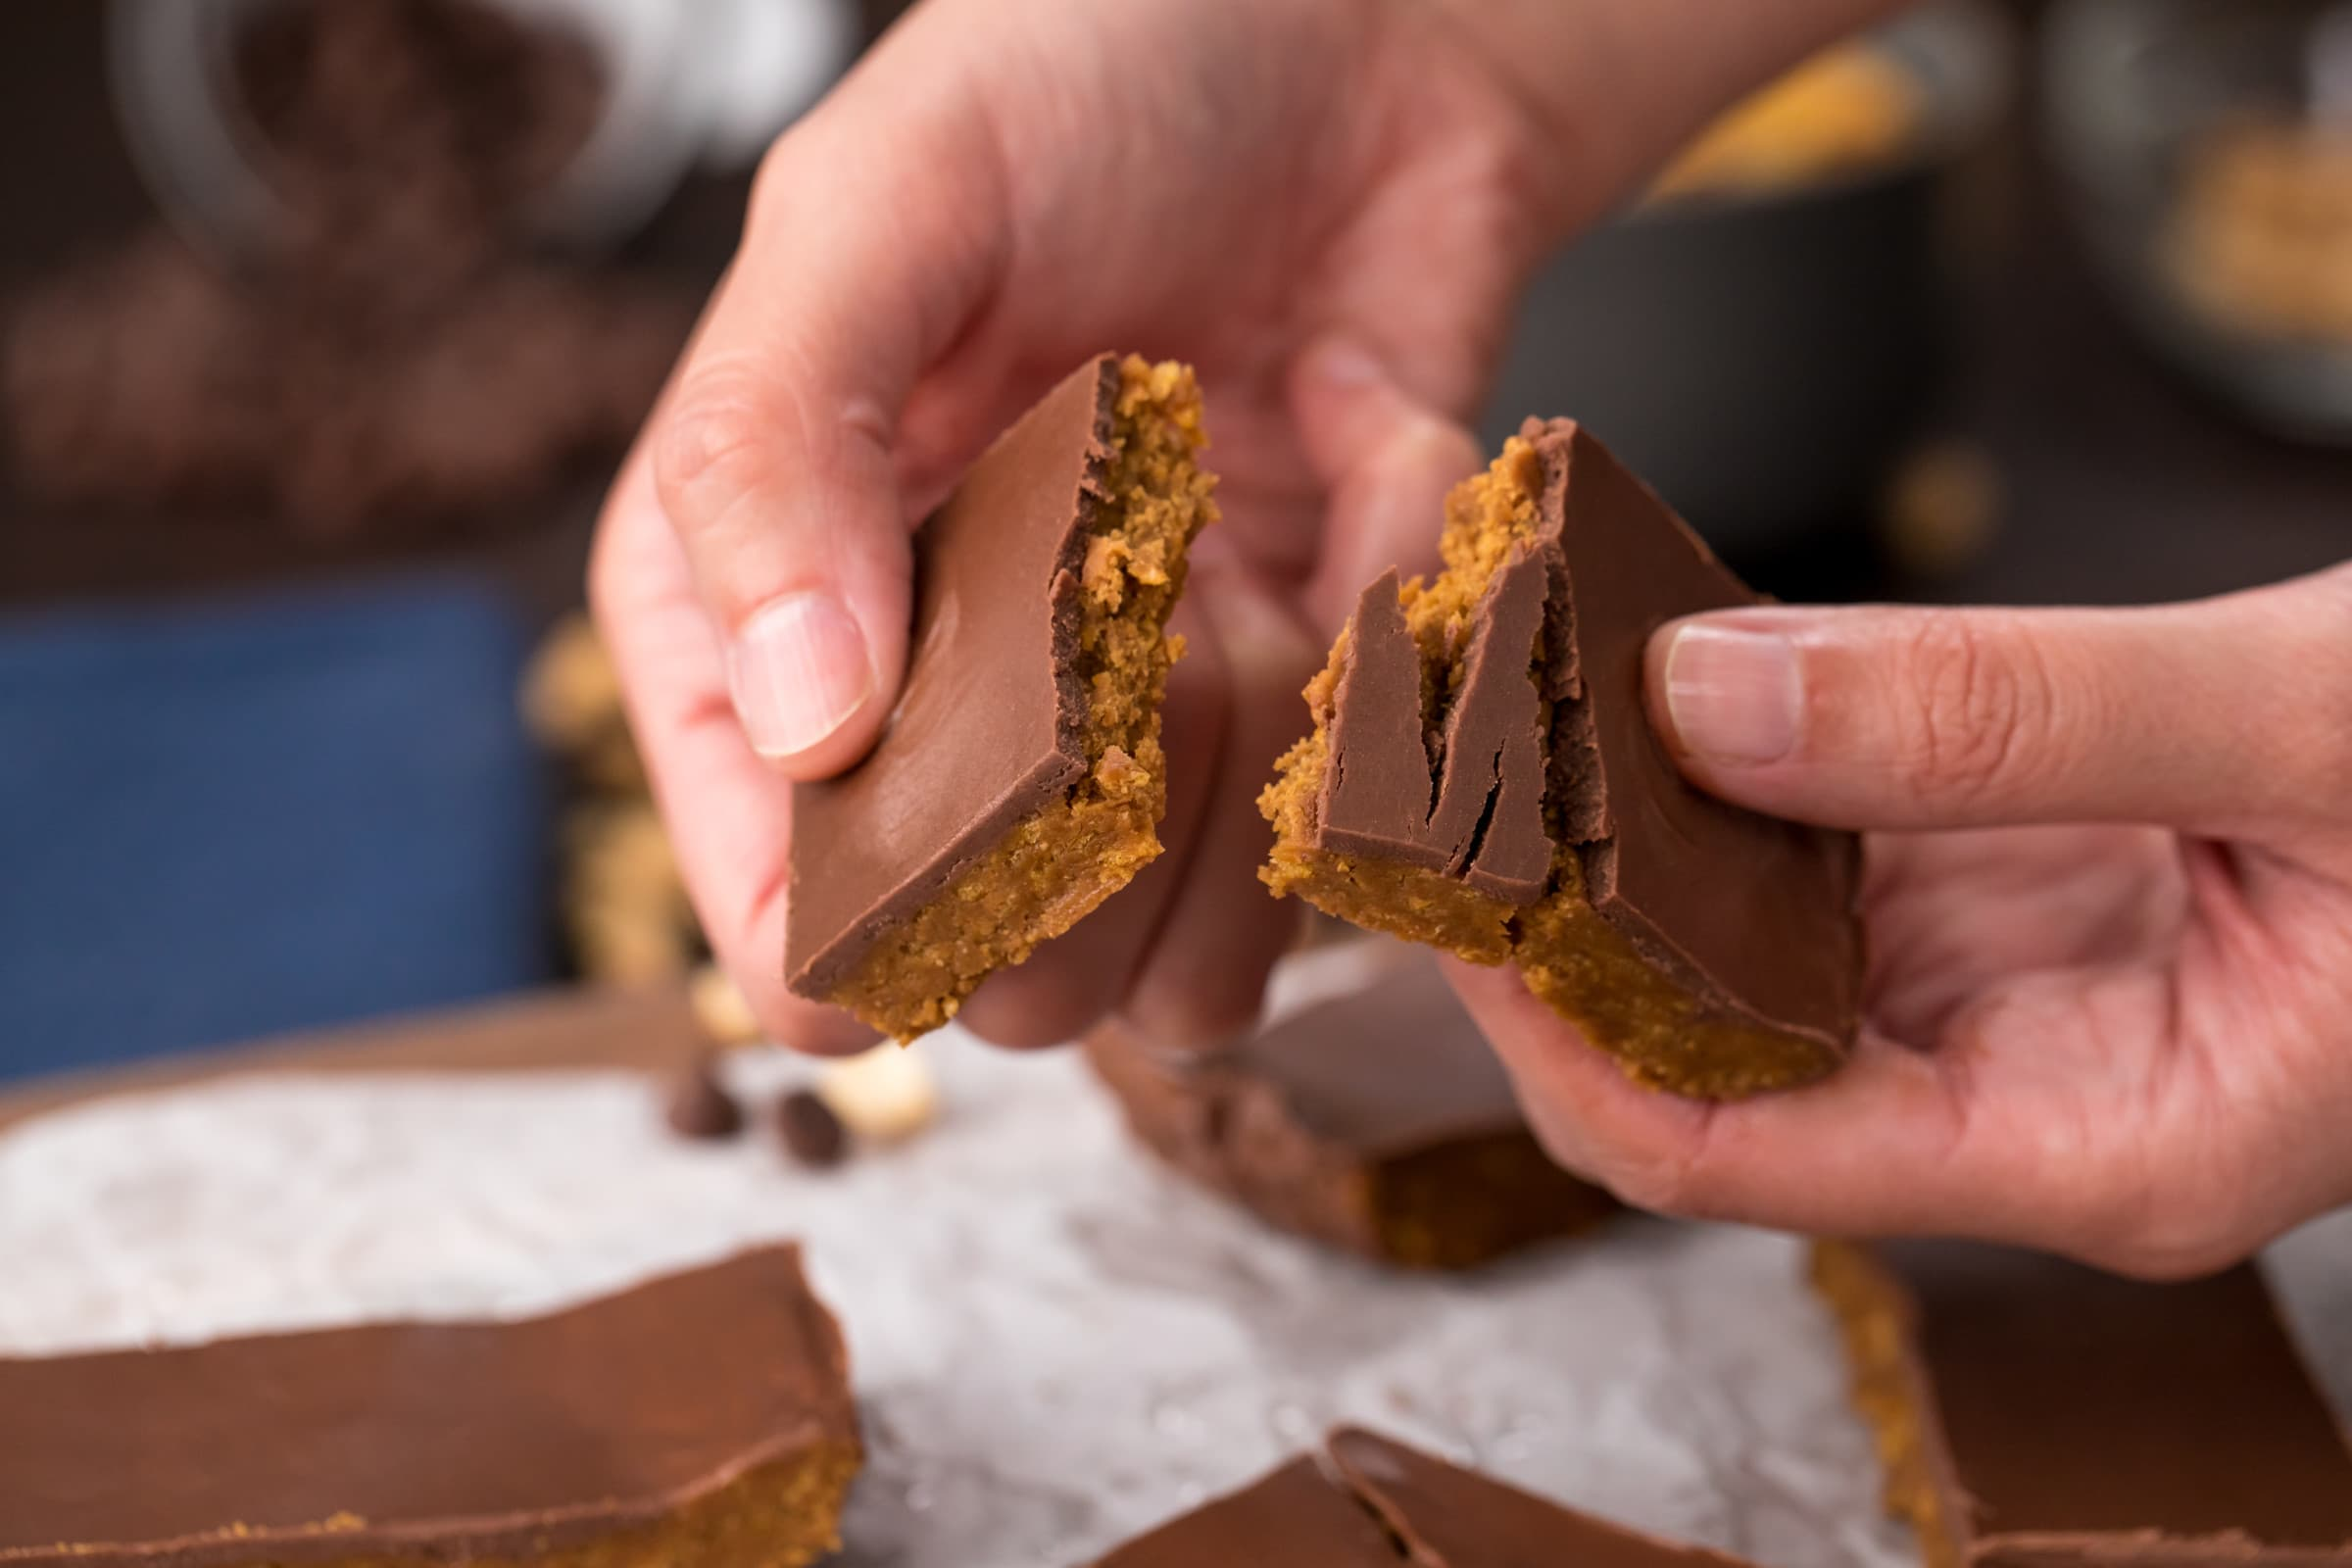 5D4B8345 - What The Fudge - Katie Higgins - Healthy Butterfingers - HIGH RES